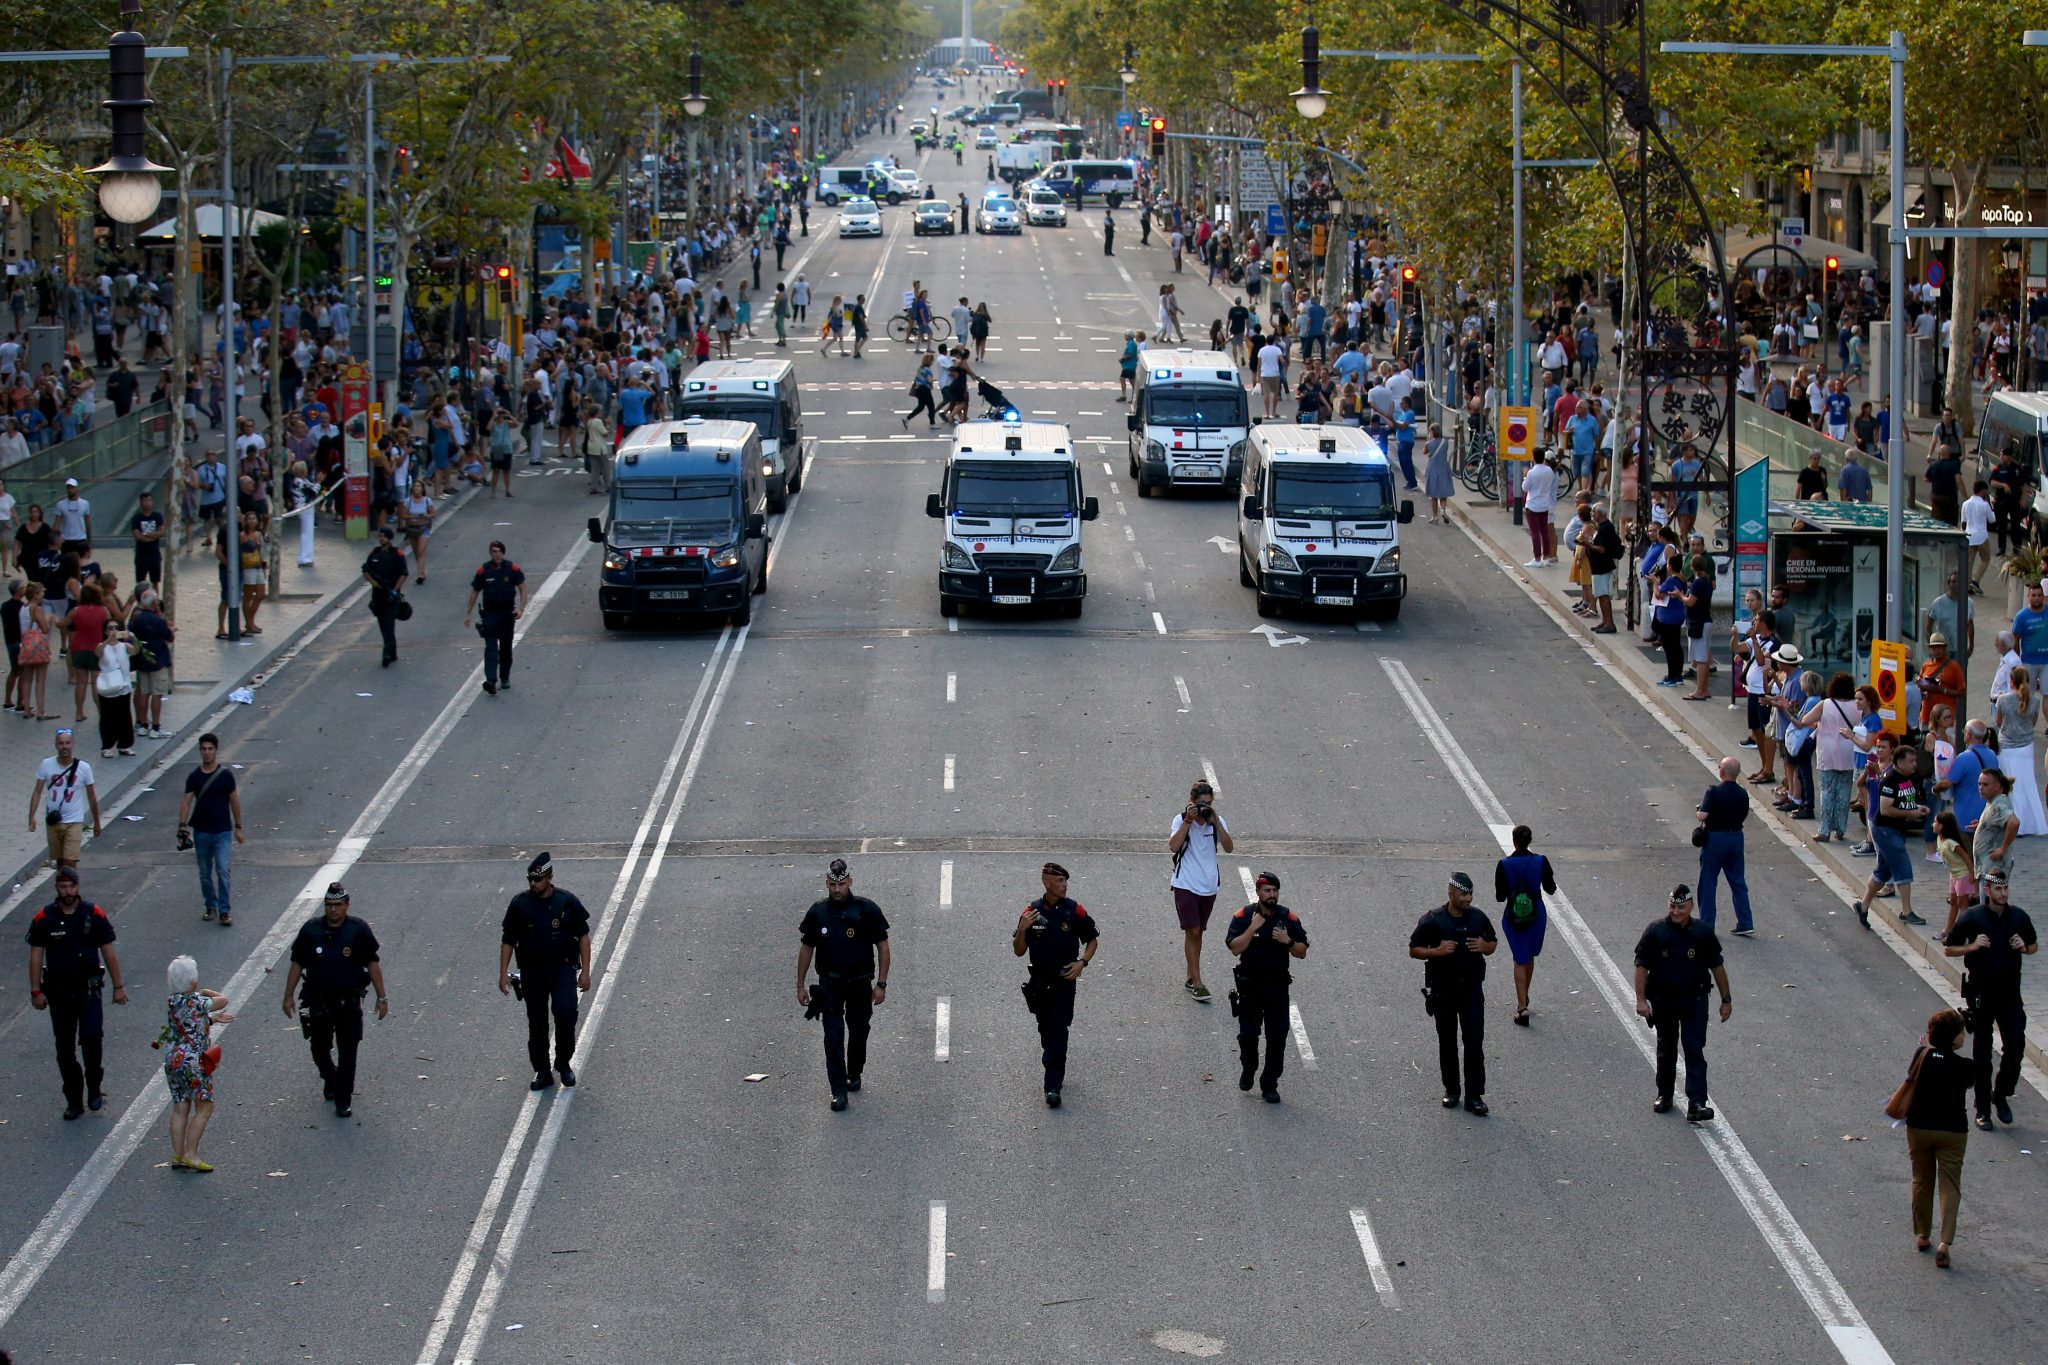 Barcelona stabbing, one year after La Rambla attack, underscores continuing link between psychological instability and militant style attacks: Catalan Mossos D'Esquadra officers patrol Paseo de Gracia street before a march of unity after the attacks in Barcelona, Spain, August 26, 2017 | REUTERS